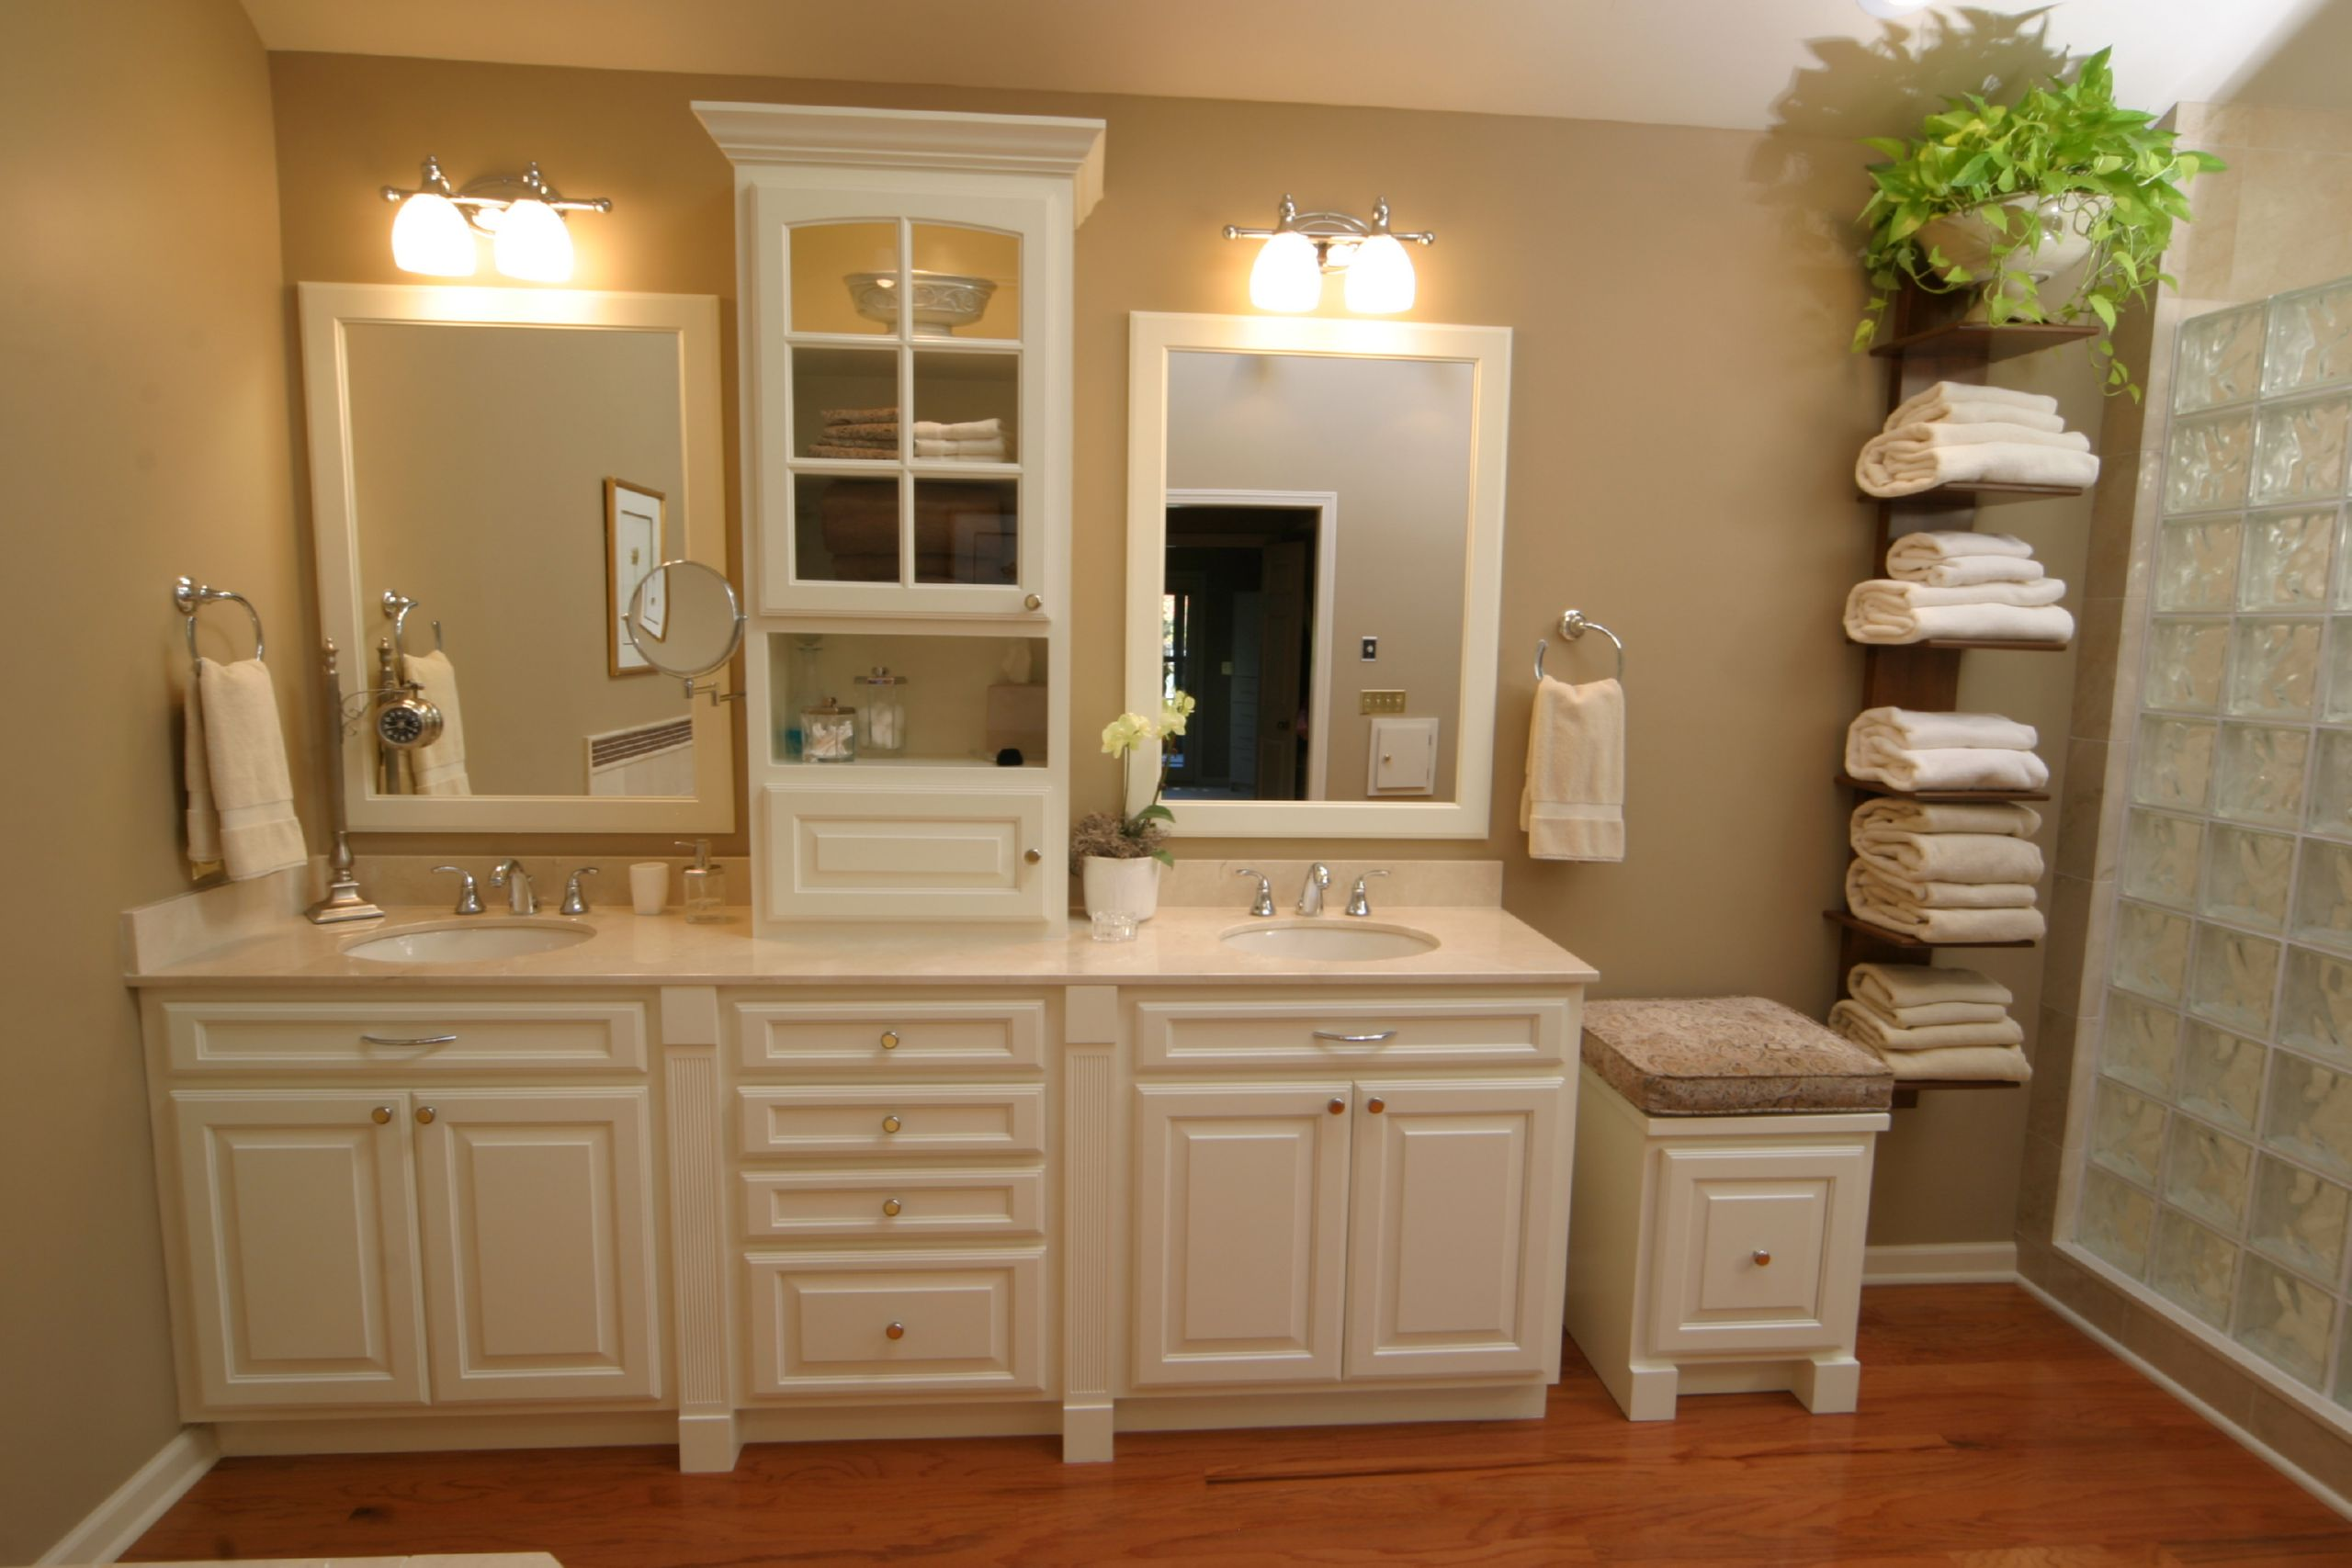 service professional nj remodeling renovation bathroom